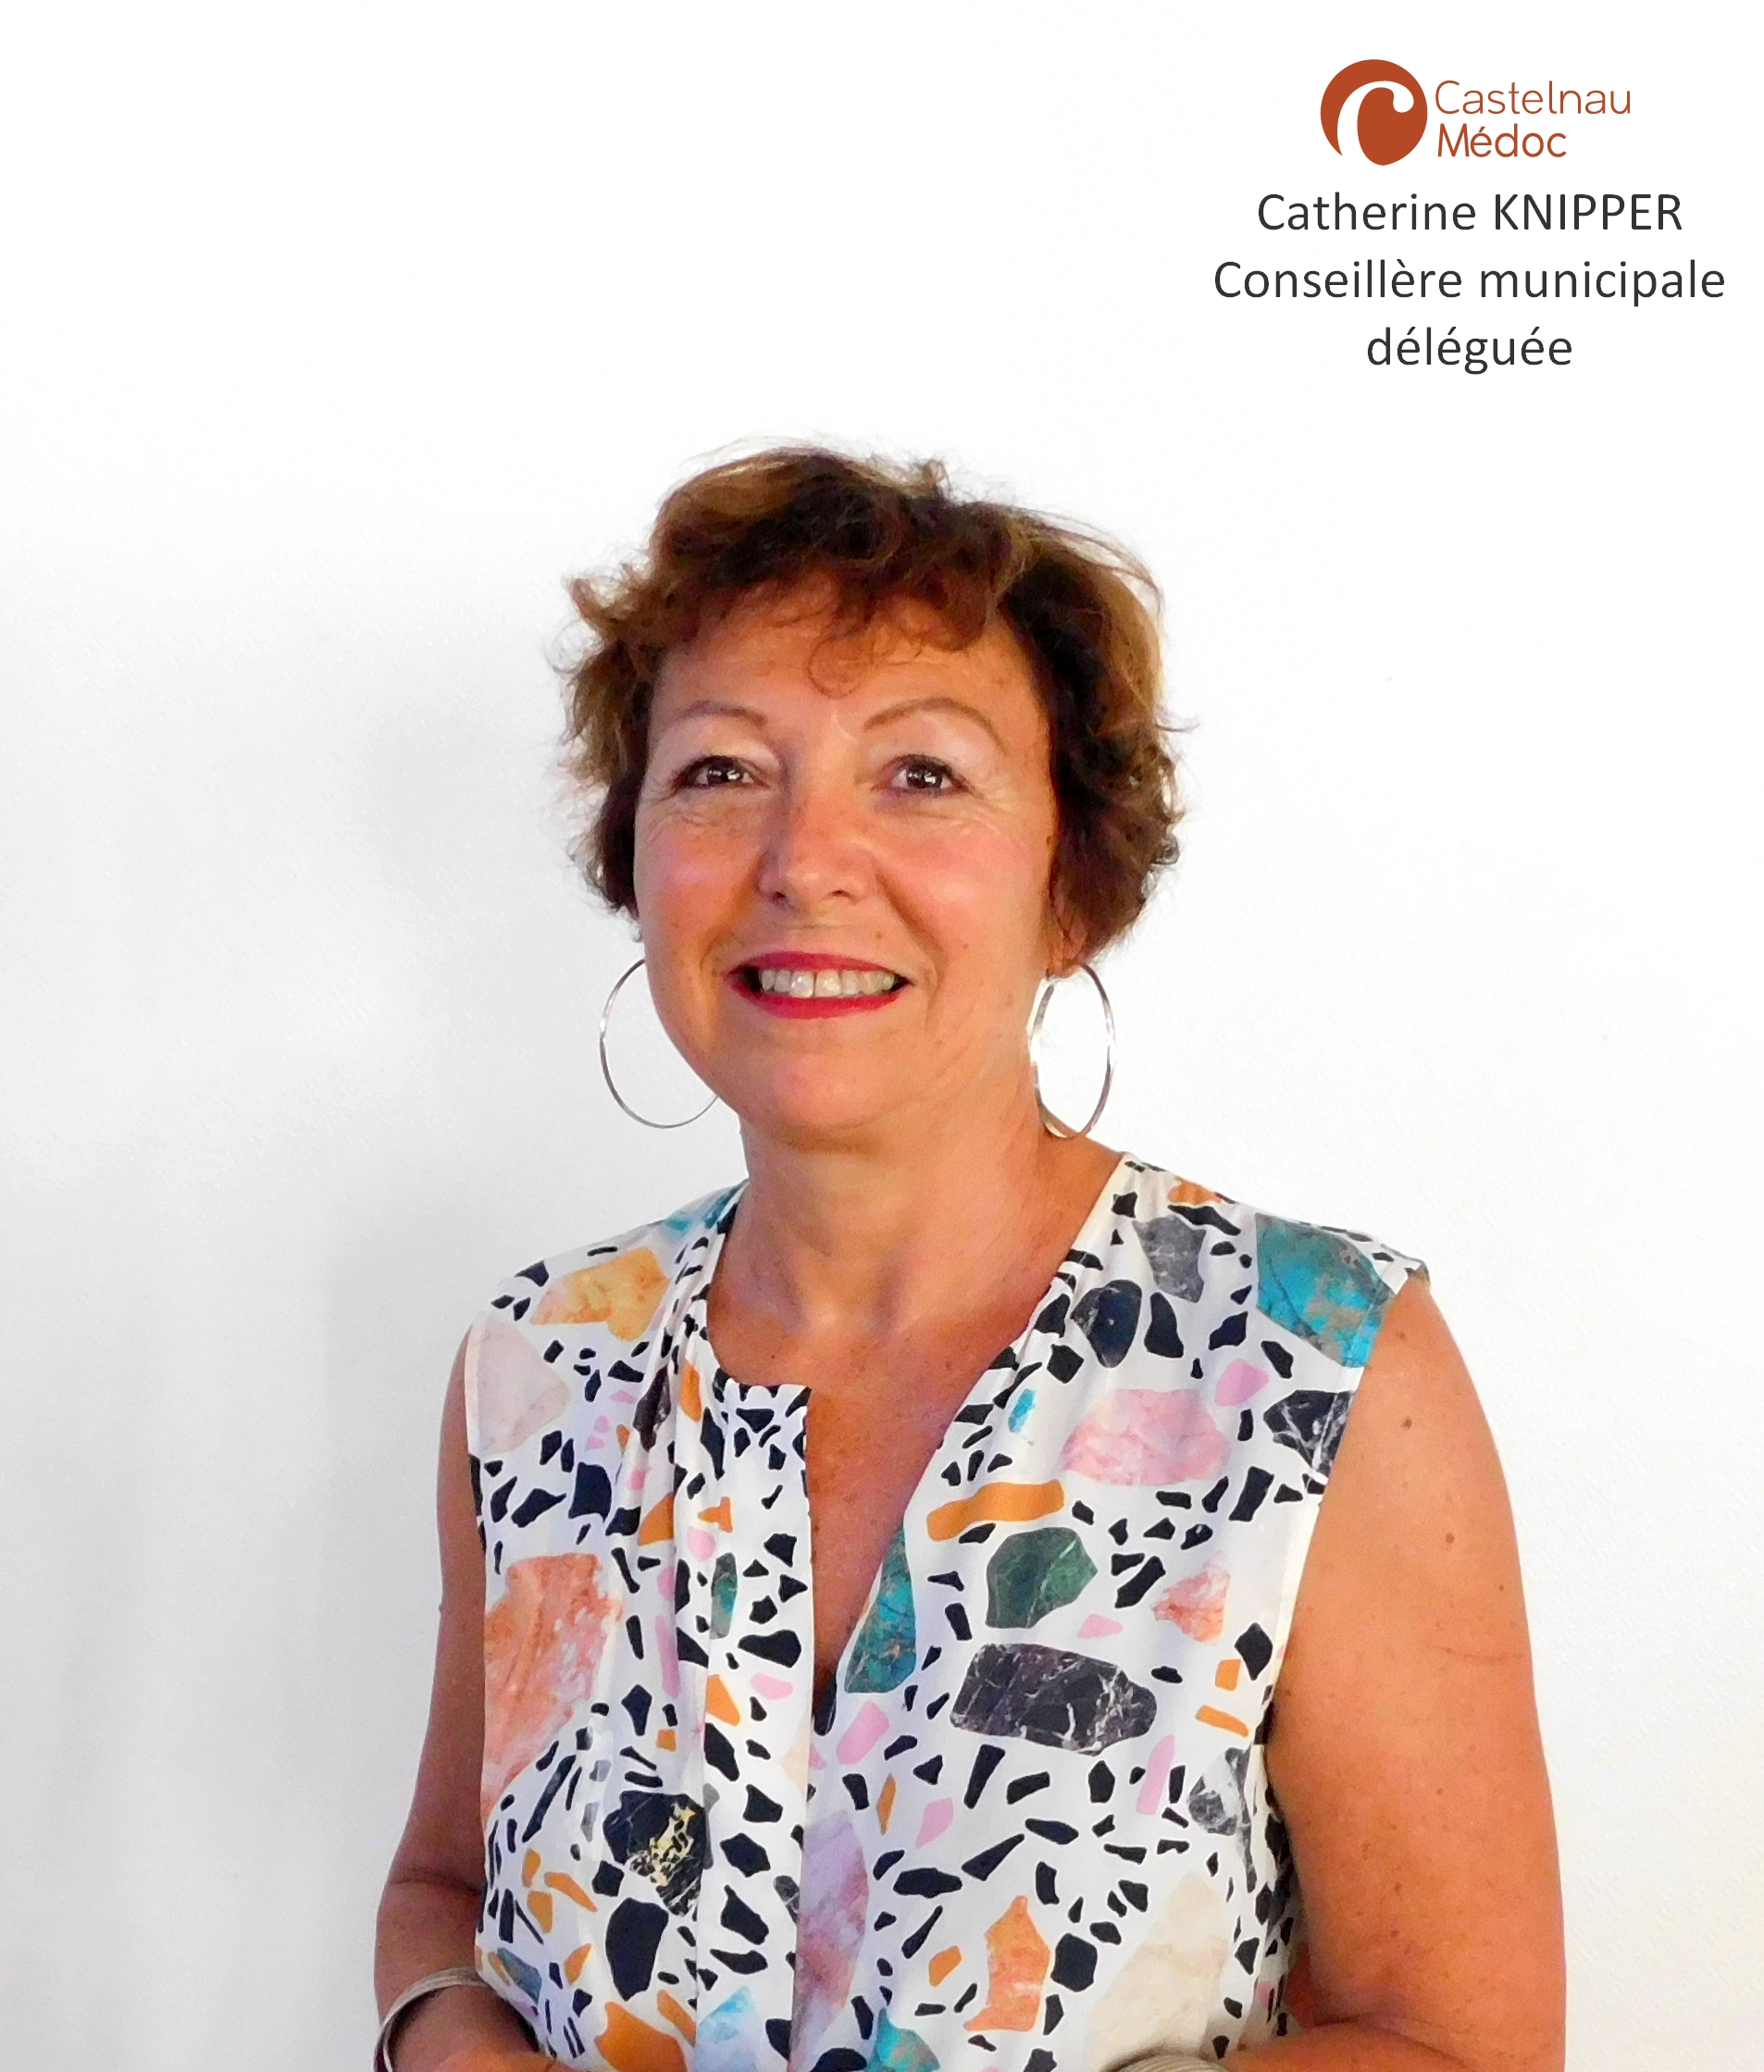 Catherine KNIPPER